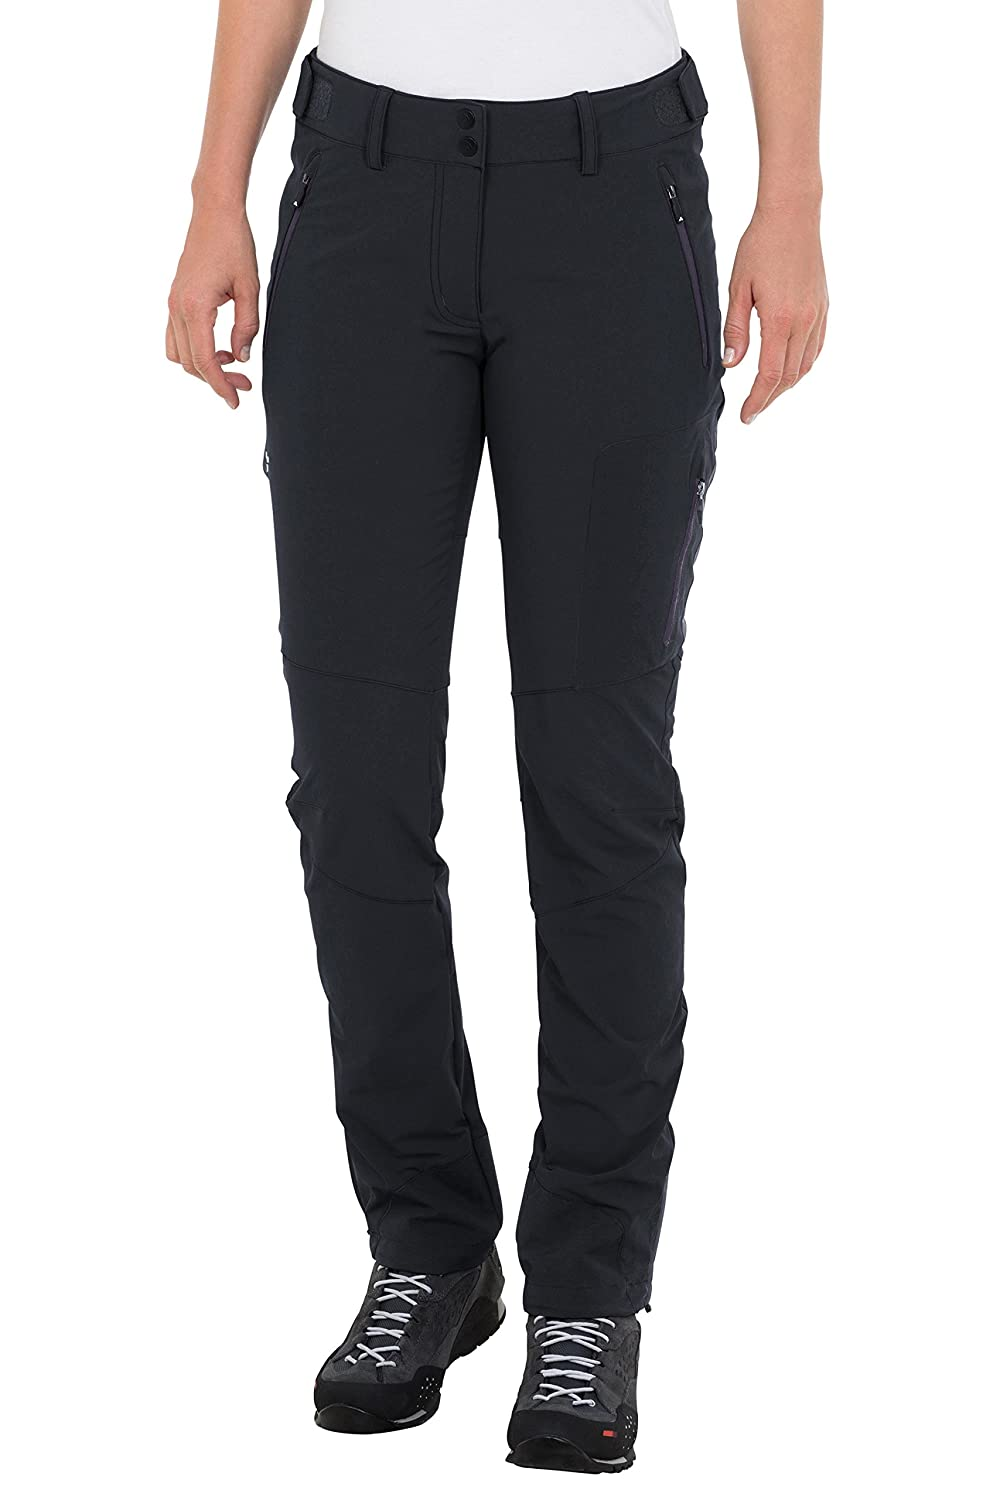 de4302bdb8ea25 Vaude Damen Hose Women's Ducan Pants on sale - pwc.pultusk.pl